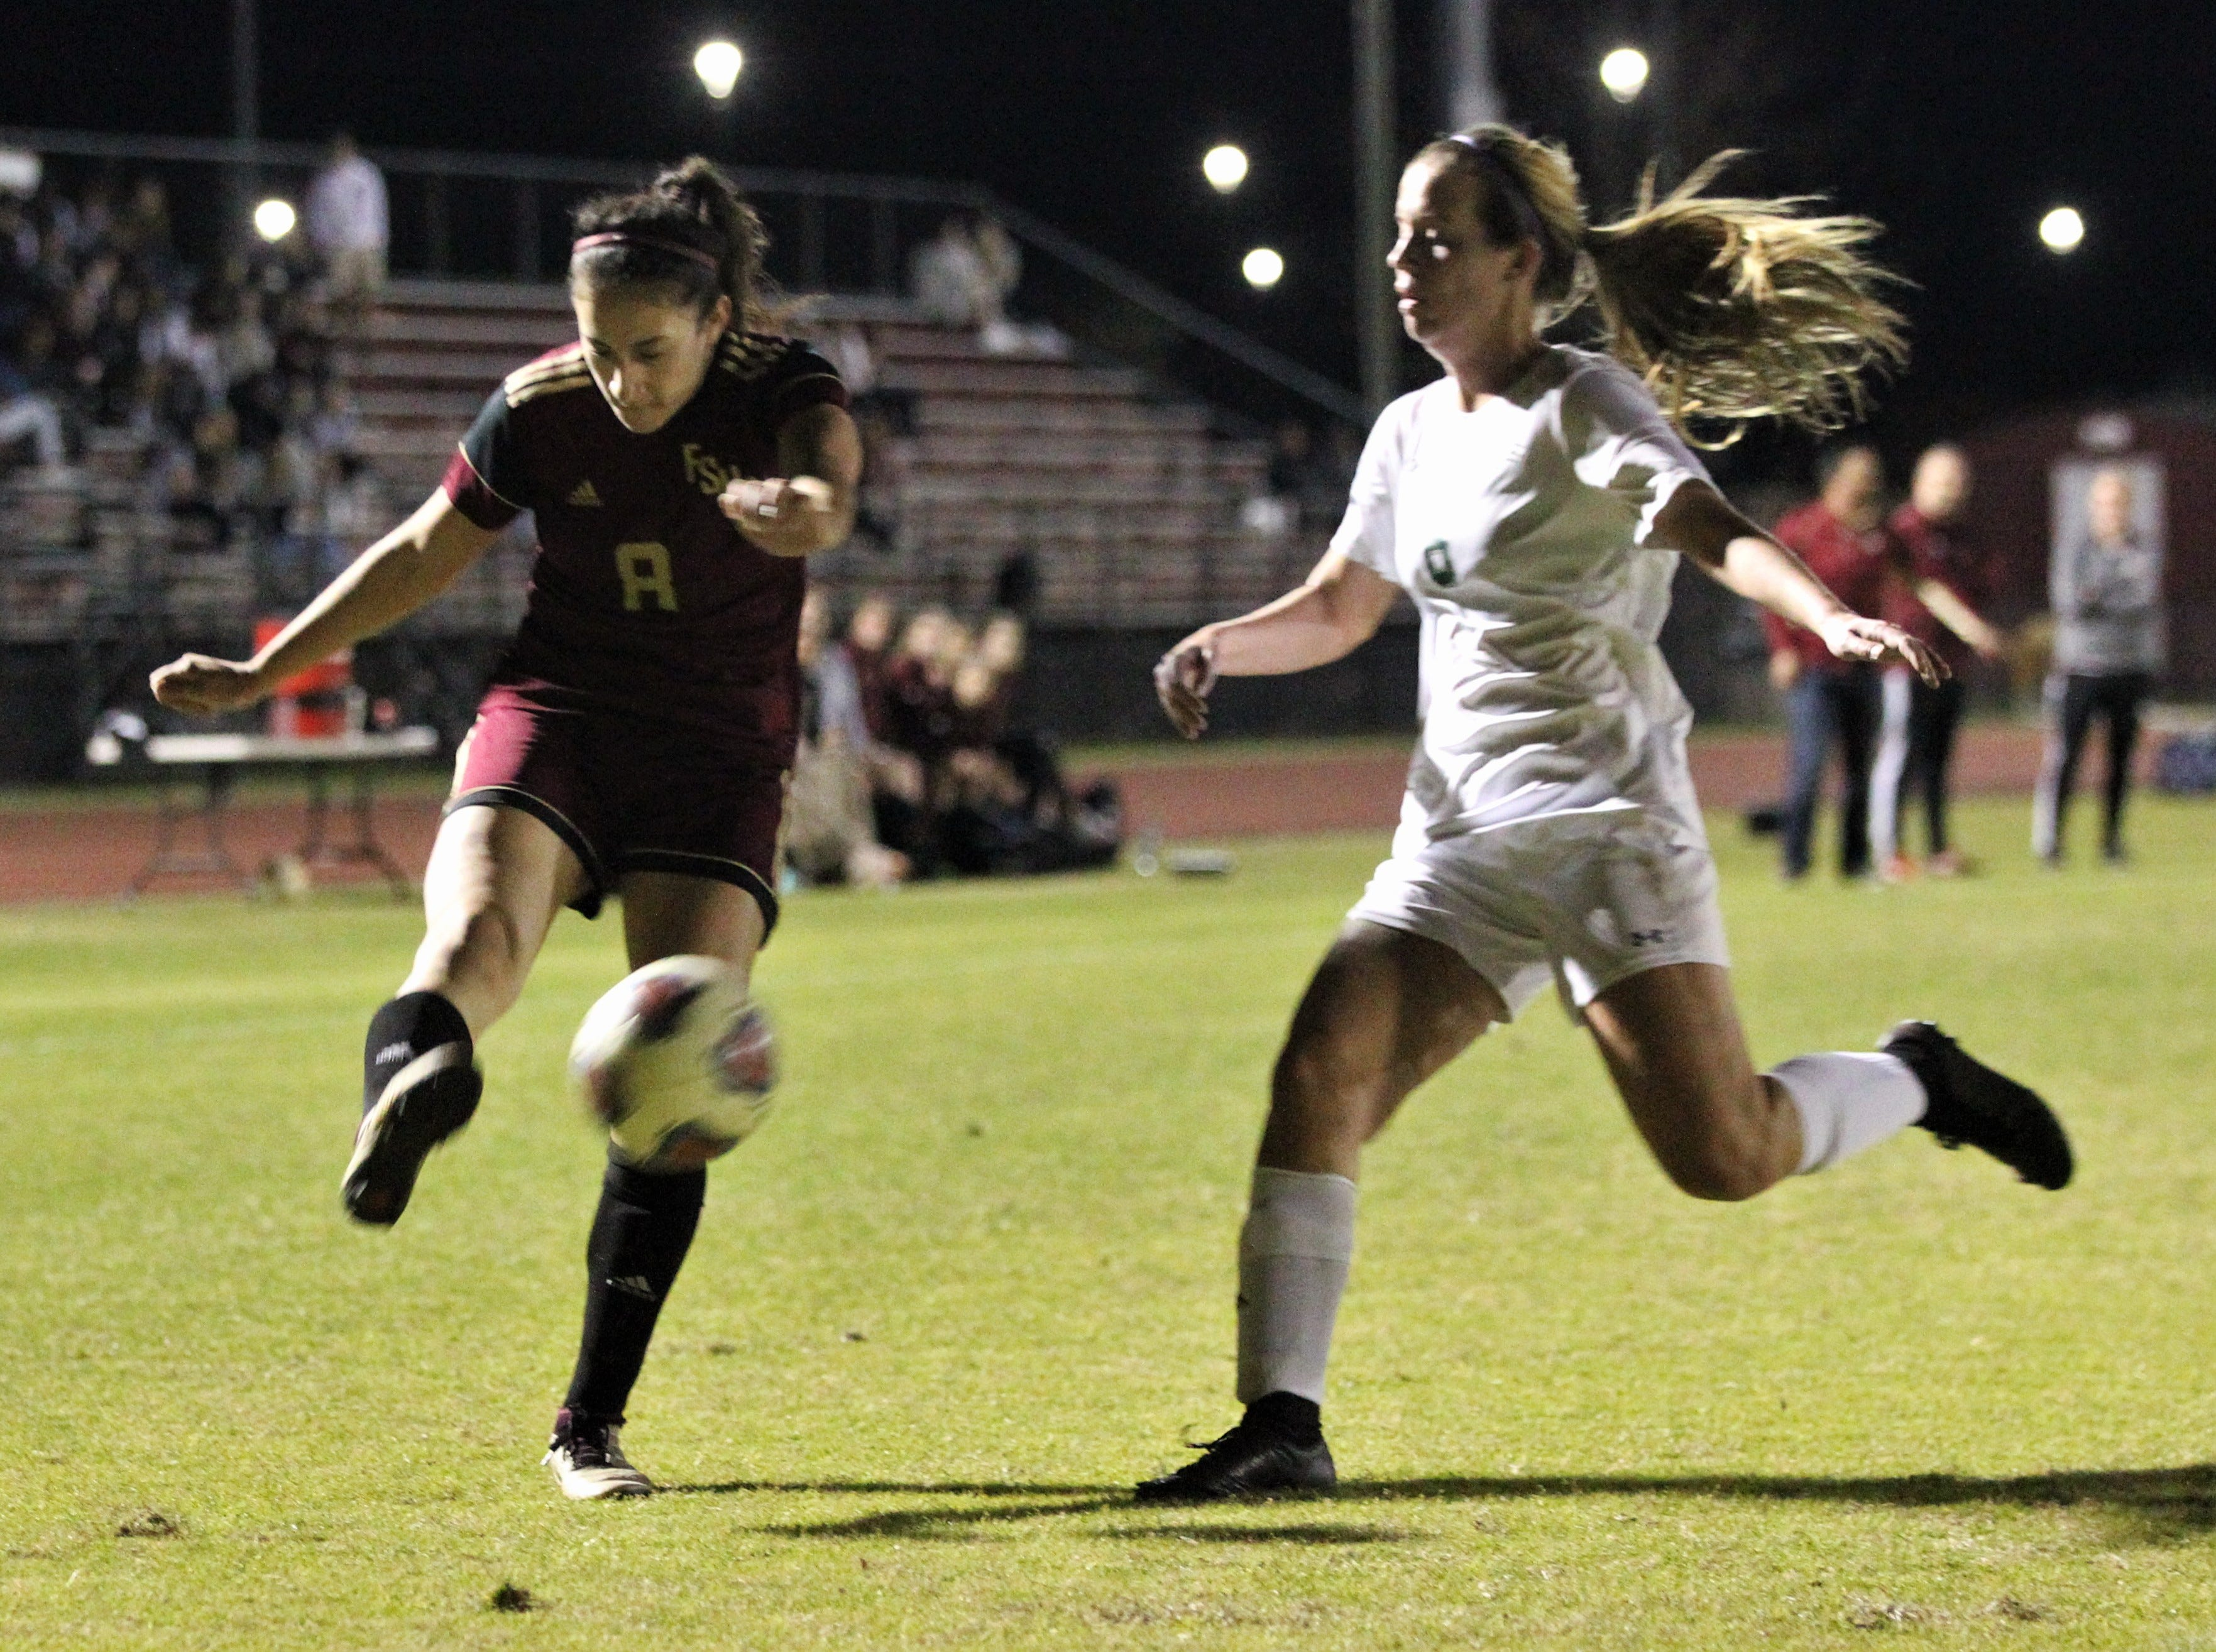 Florida High's Lily Quijada sends a cross as South Walton edged the Seminoles 5-4 in a penalty-kick shootout during a Region 1-2A semifinal on Feb. 8, 2019.